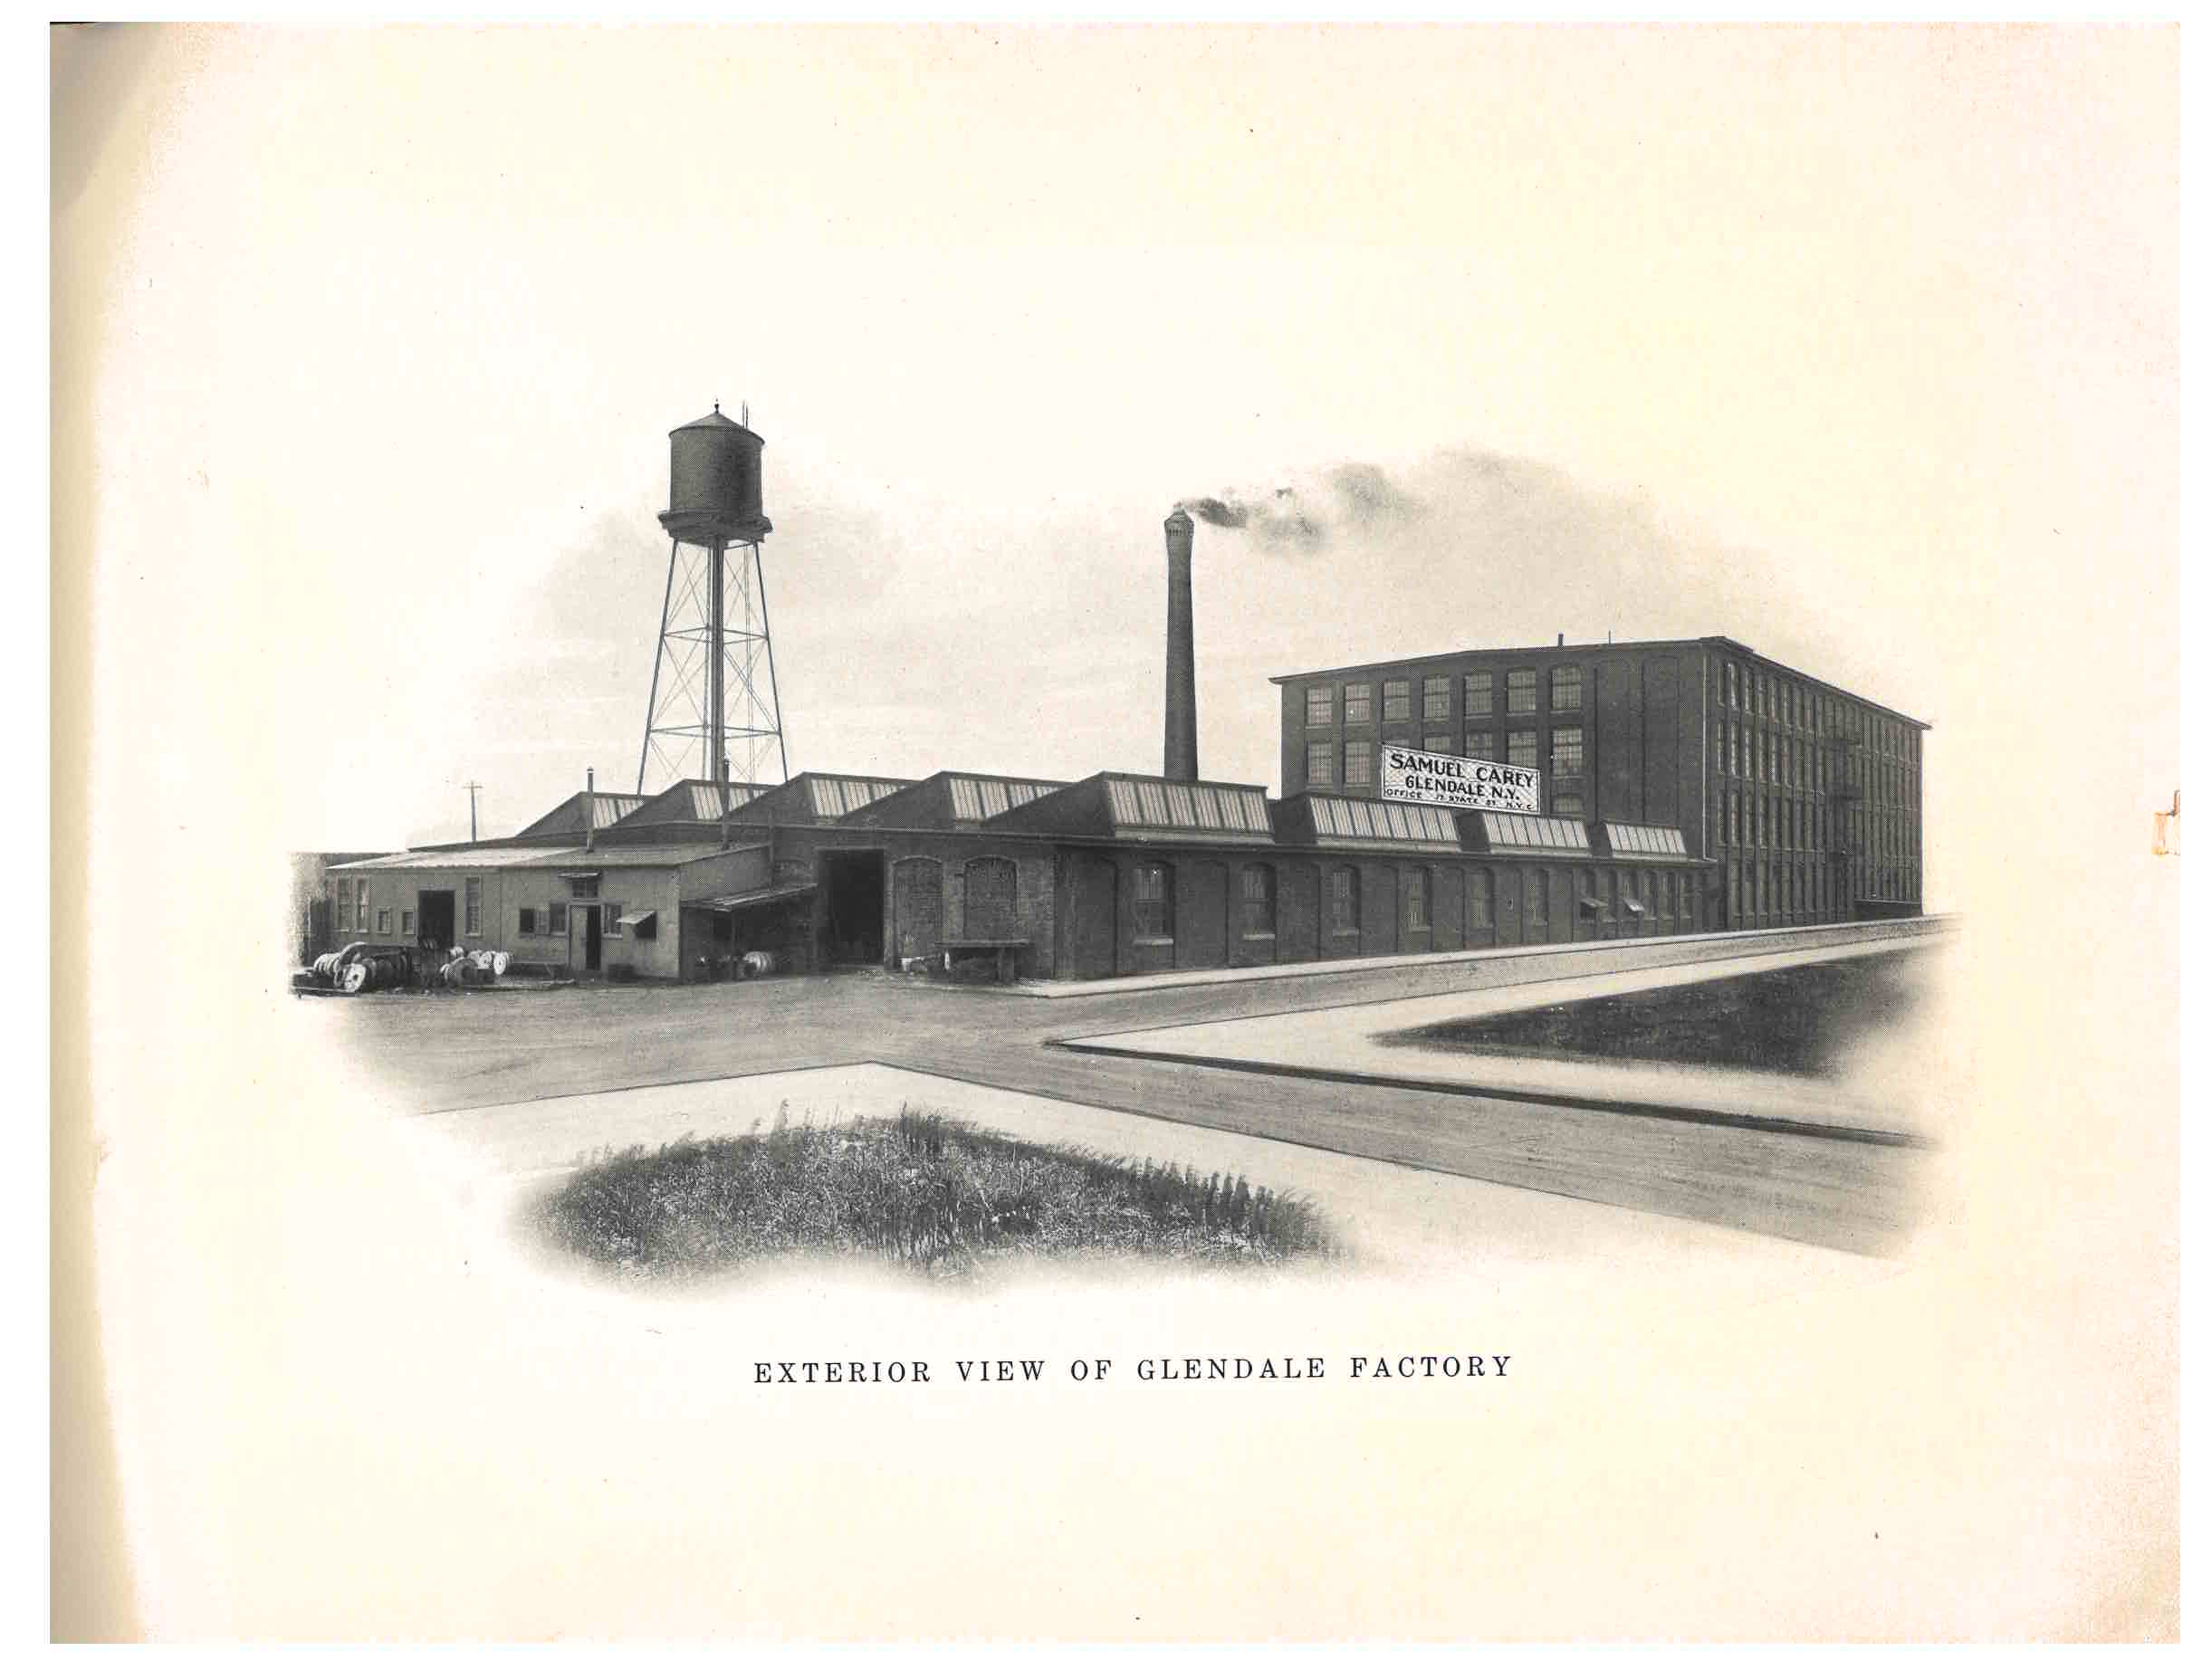 exterior view of the Glendale Factory of Samuel Carey in Glendale, New York